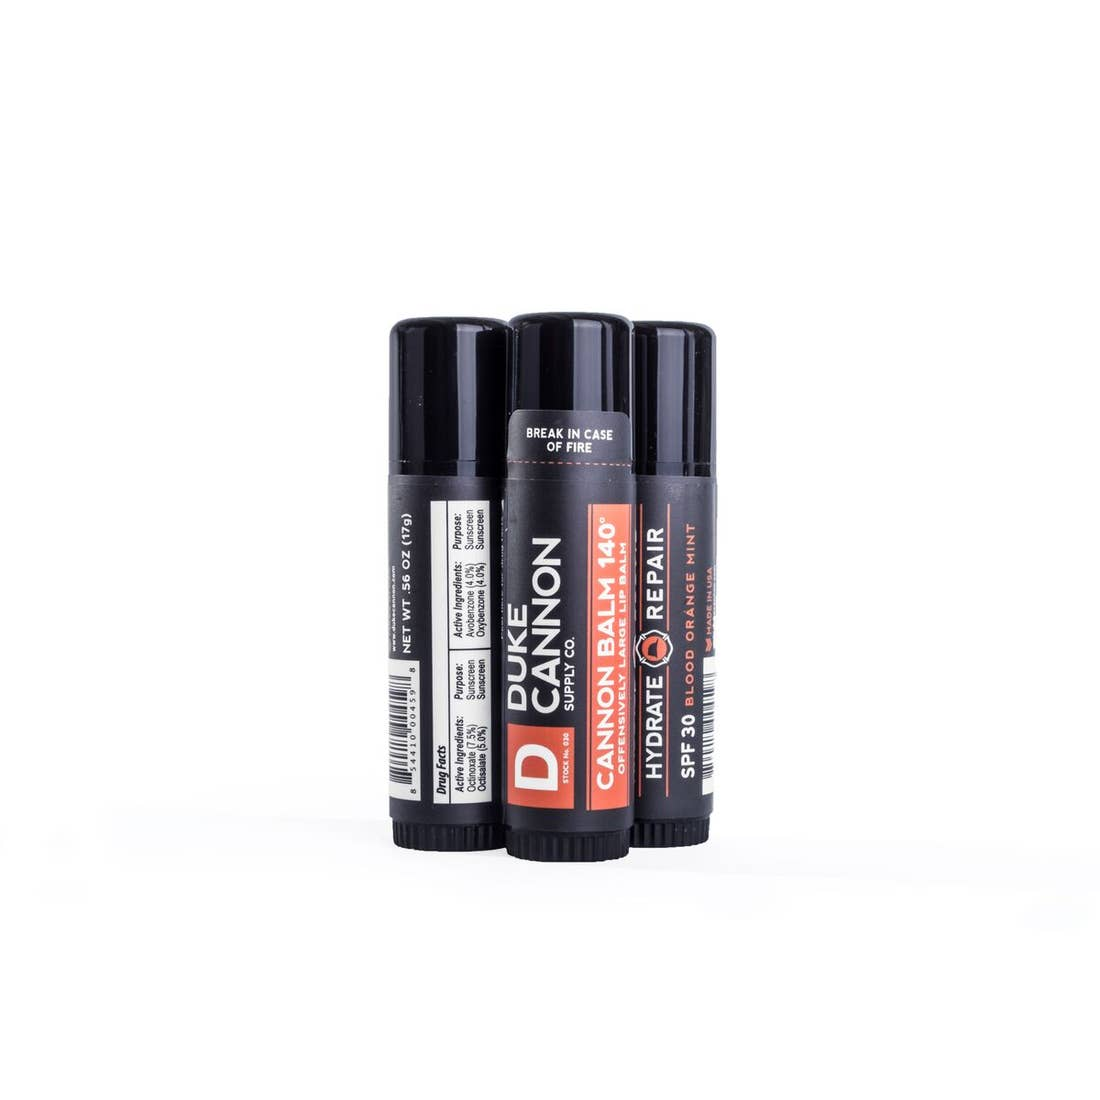 Cannon Balm 140° | Offensively Large Lip Balm - Giften Market